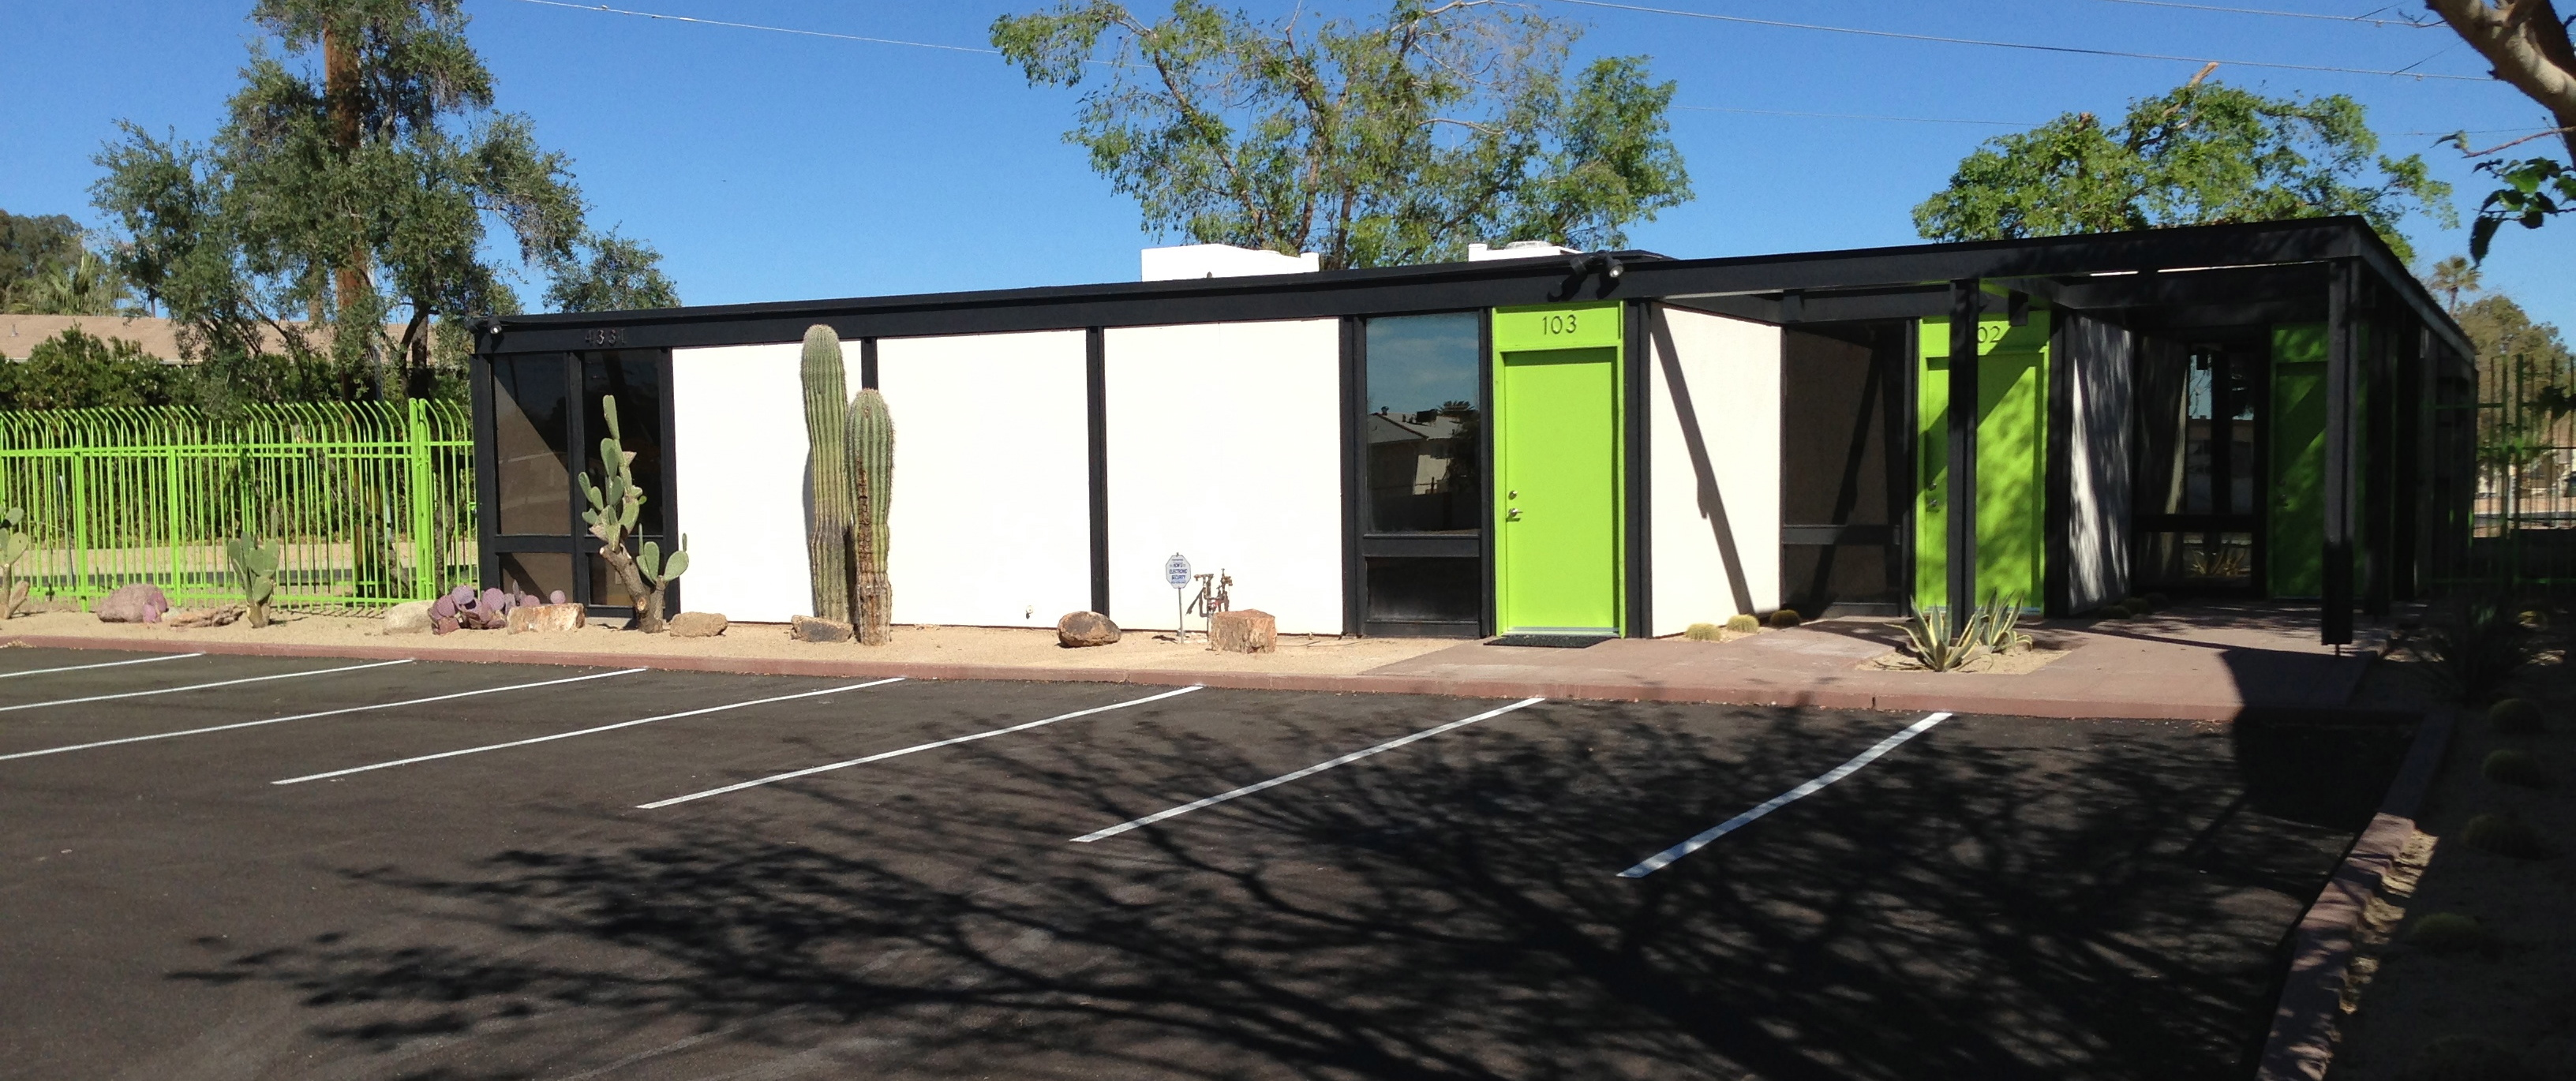 4331 N 12th Street, Phoenix, AZ 85014 | The Doyle Building